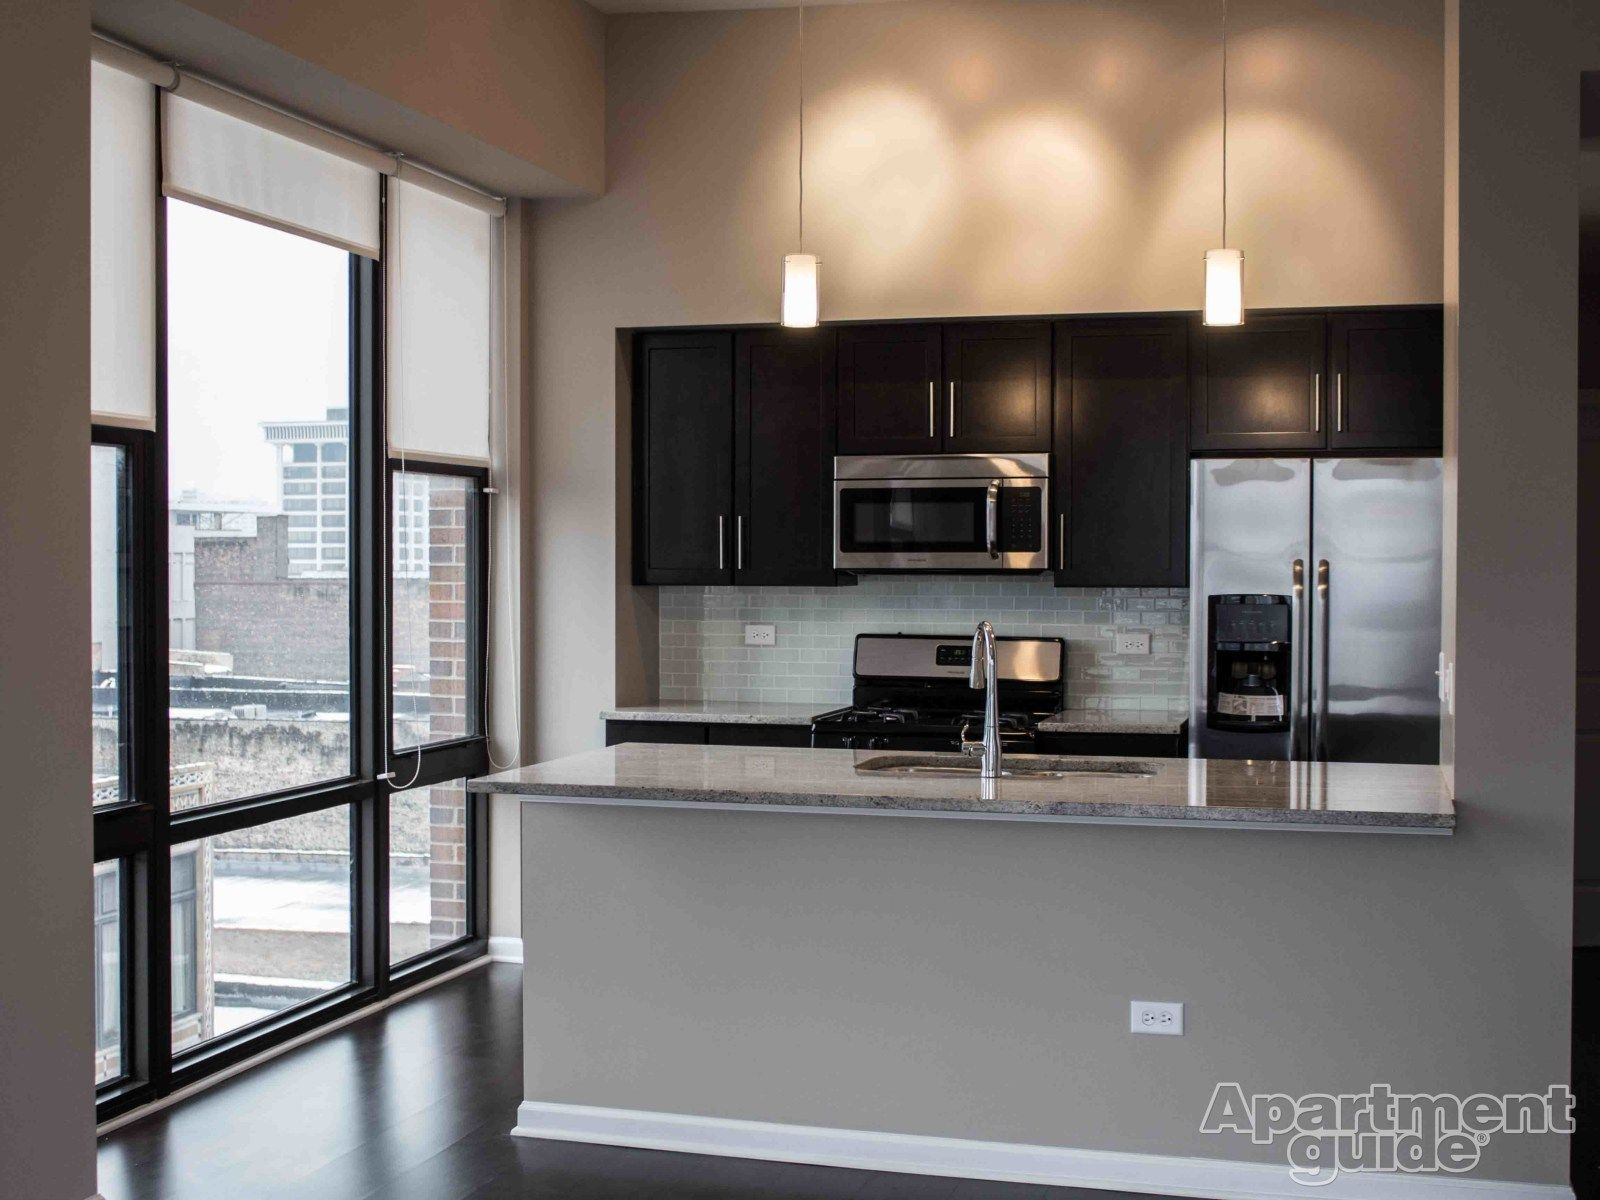 The Shelby 2300 Apartments Chicago Il 60616 Apartments For Rent Luxury Apartment Decor Luxury Kitchen Modern First Apartment Decorating